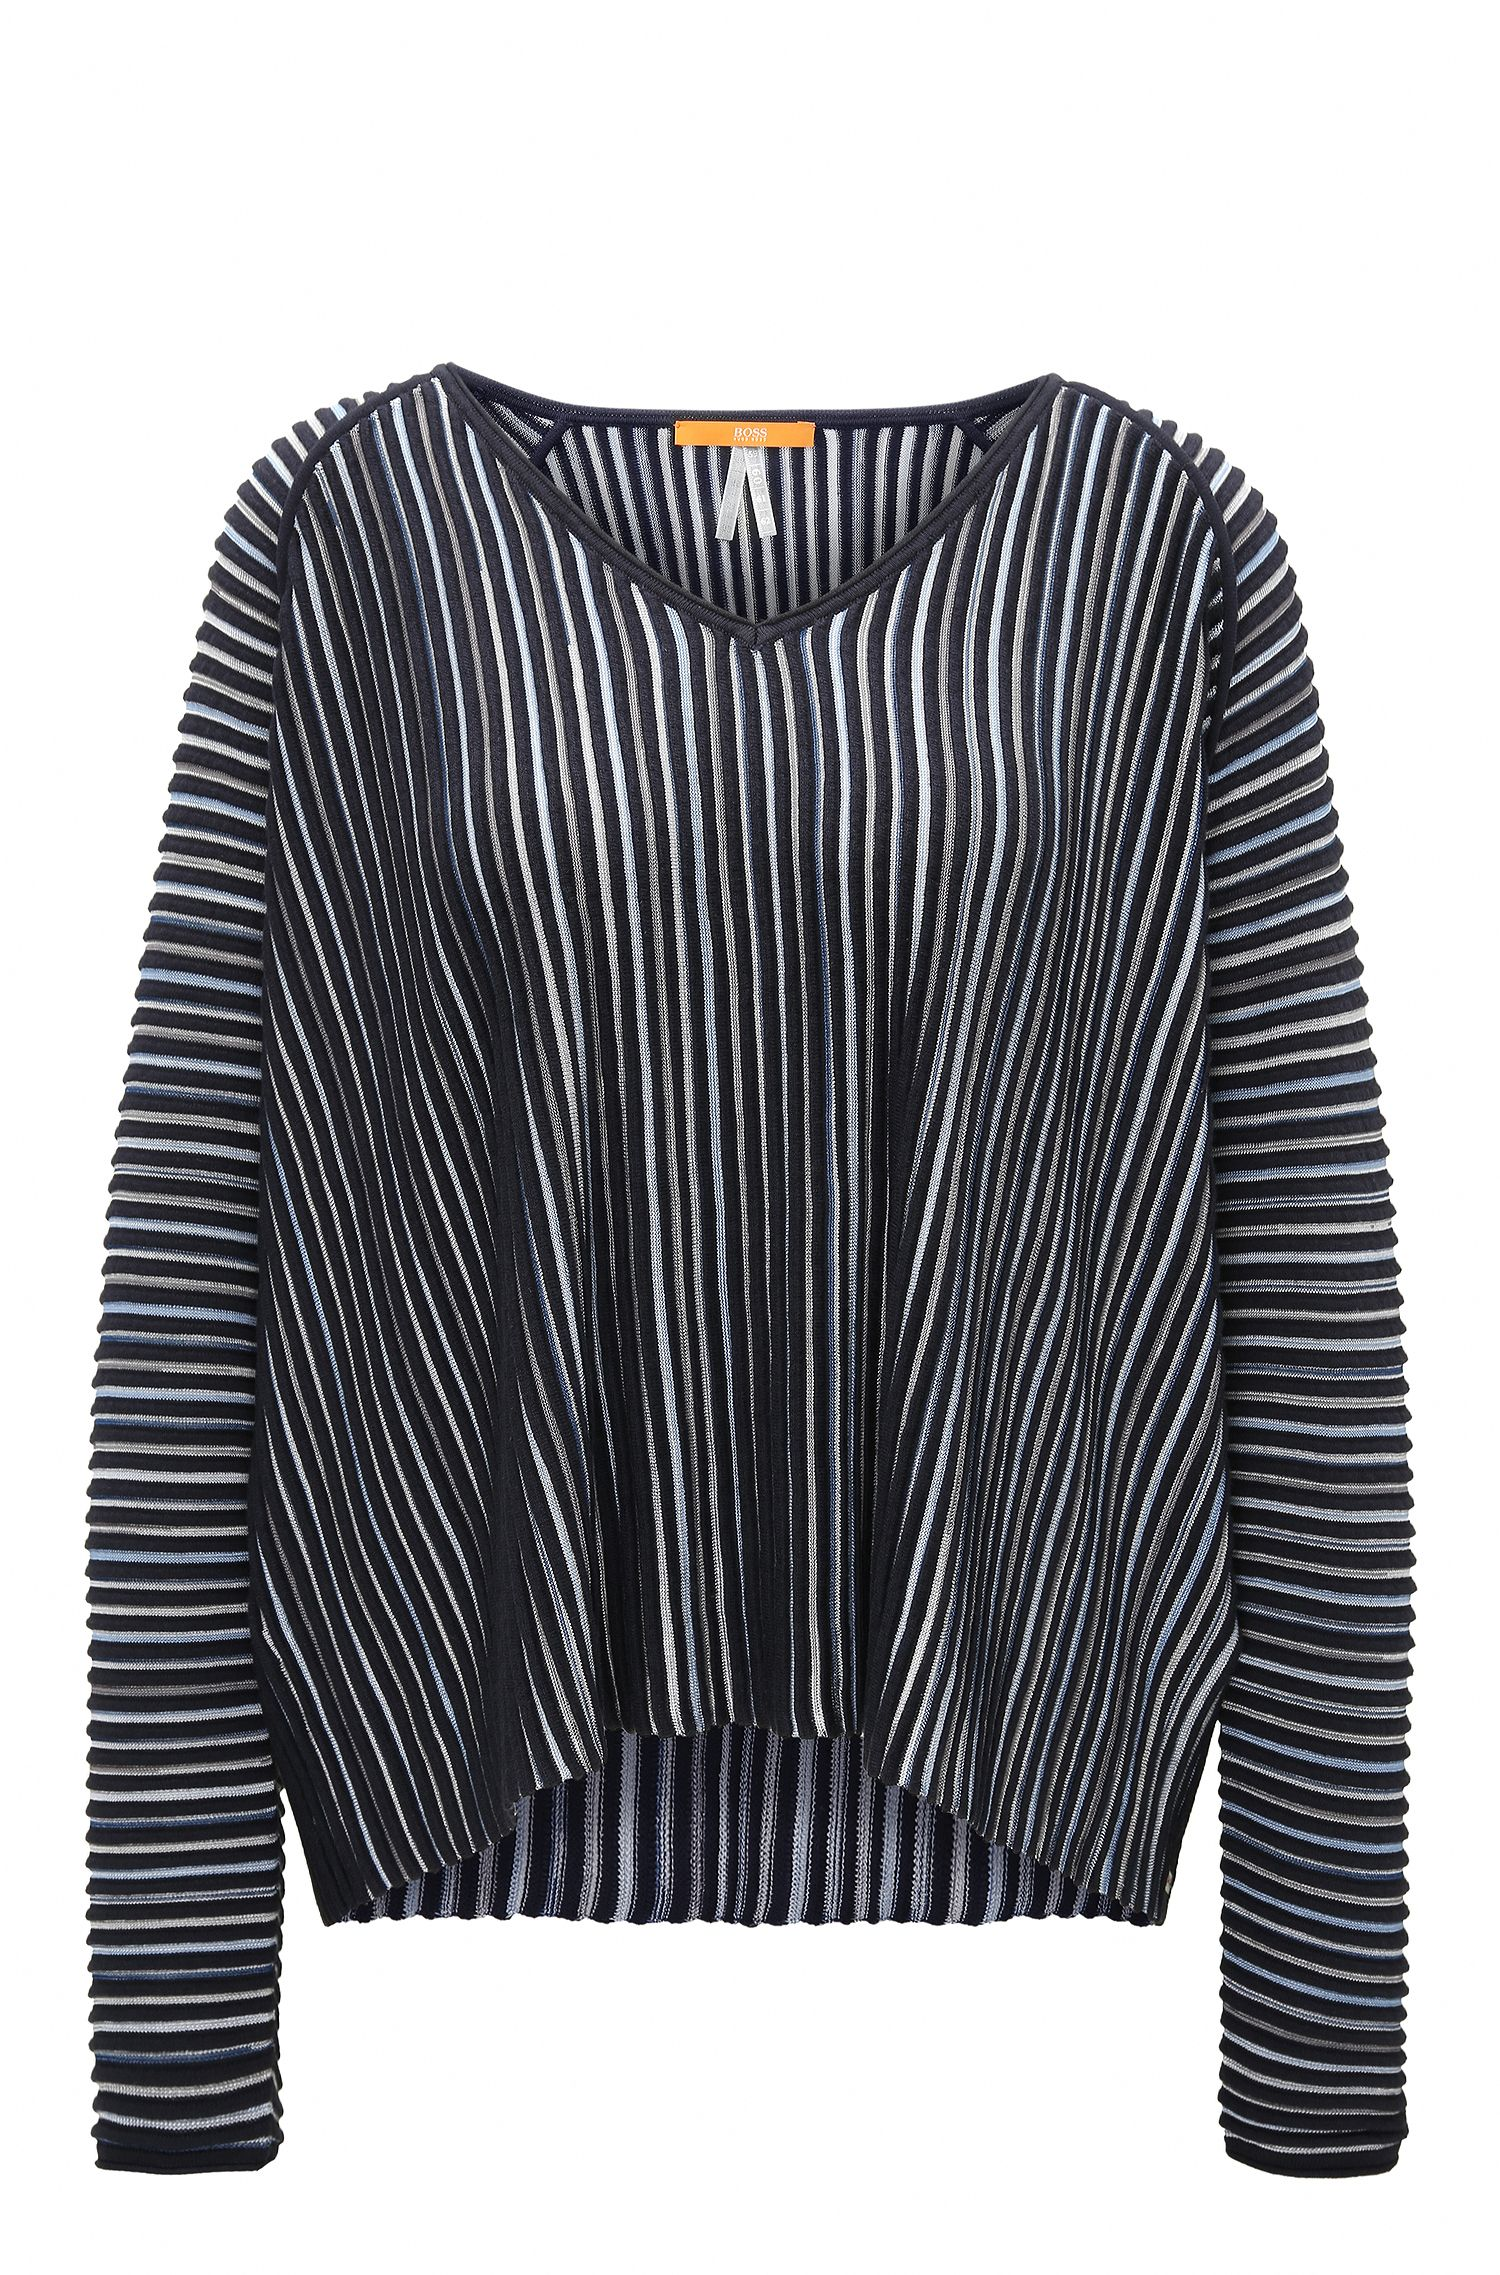 Relaxed-fit sweater in structured fabric